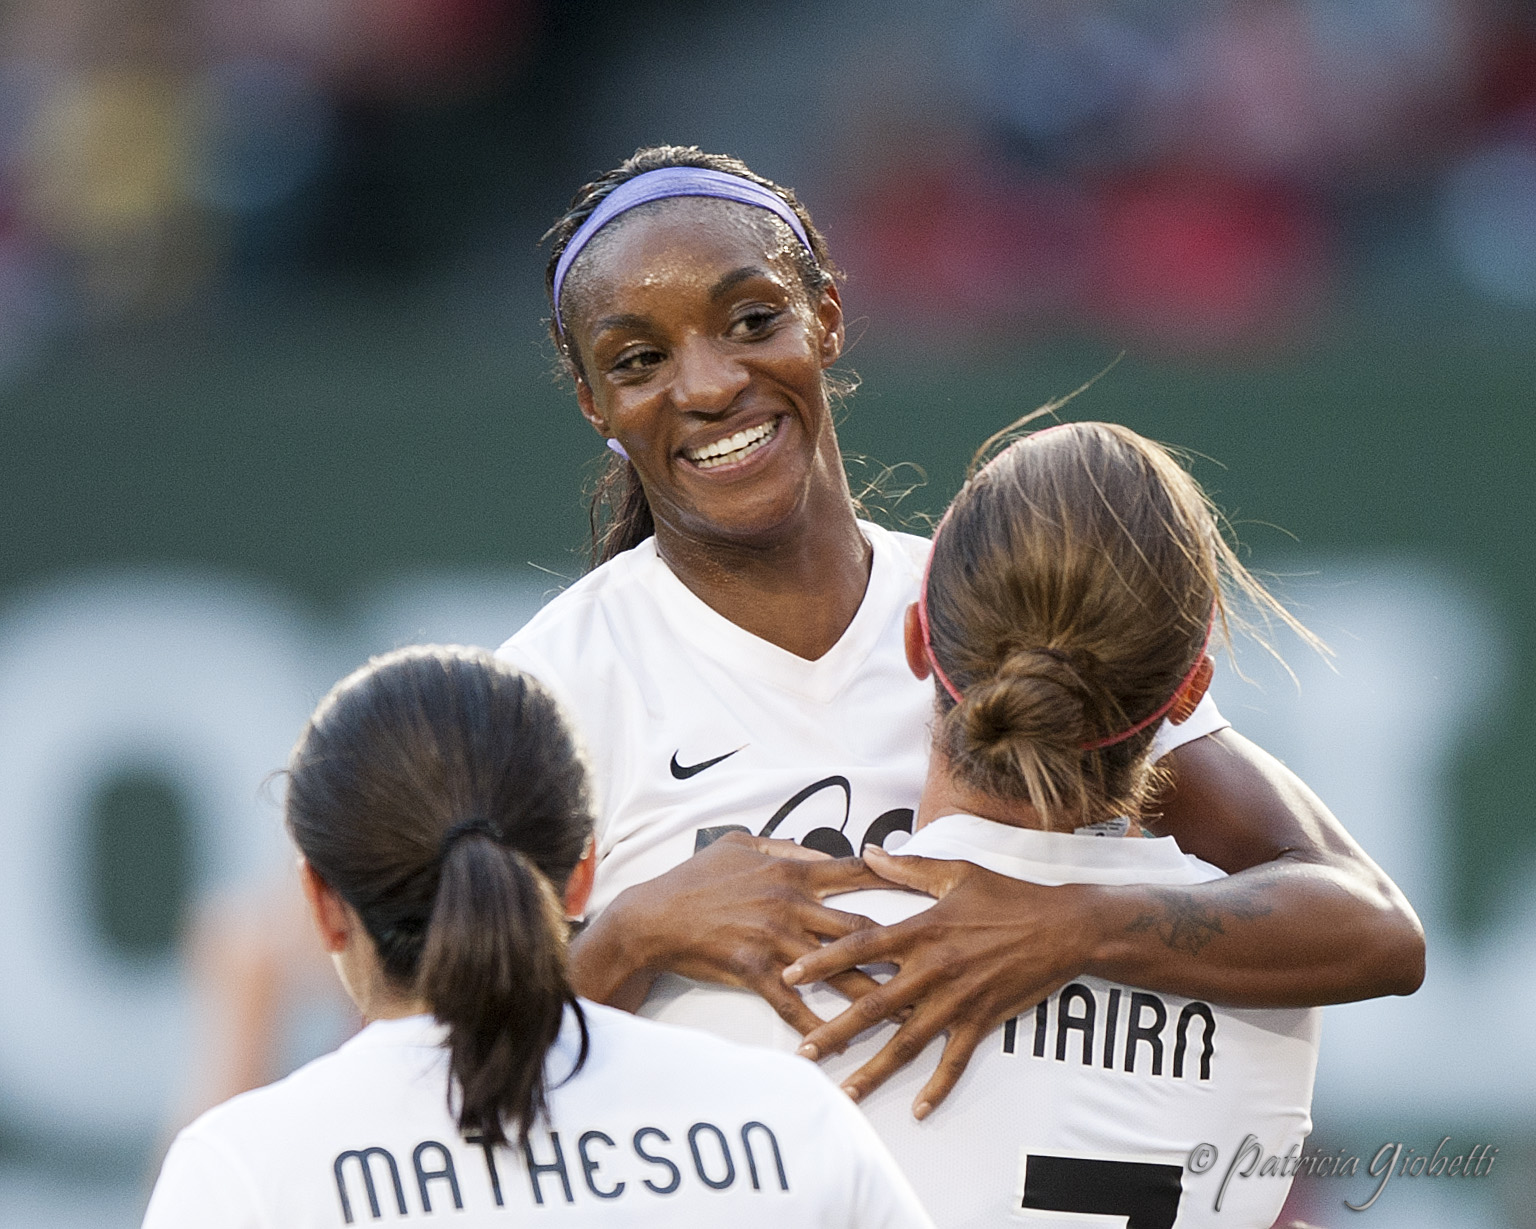 The year of Crystal Dunn continued on Thursday when she scored her first goal for the United States national team. Dunn had already set up the United States' first two goals on the night, but she scored one for herself in the final seconds of the match of a 5-0 win over Haiti. Dunn was […]